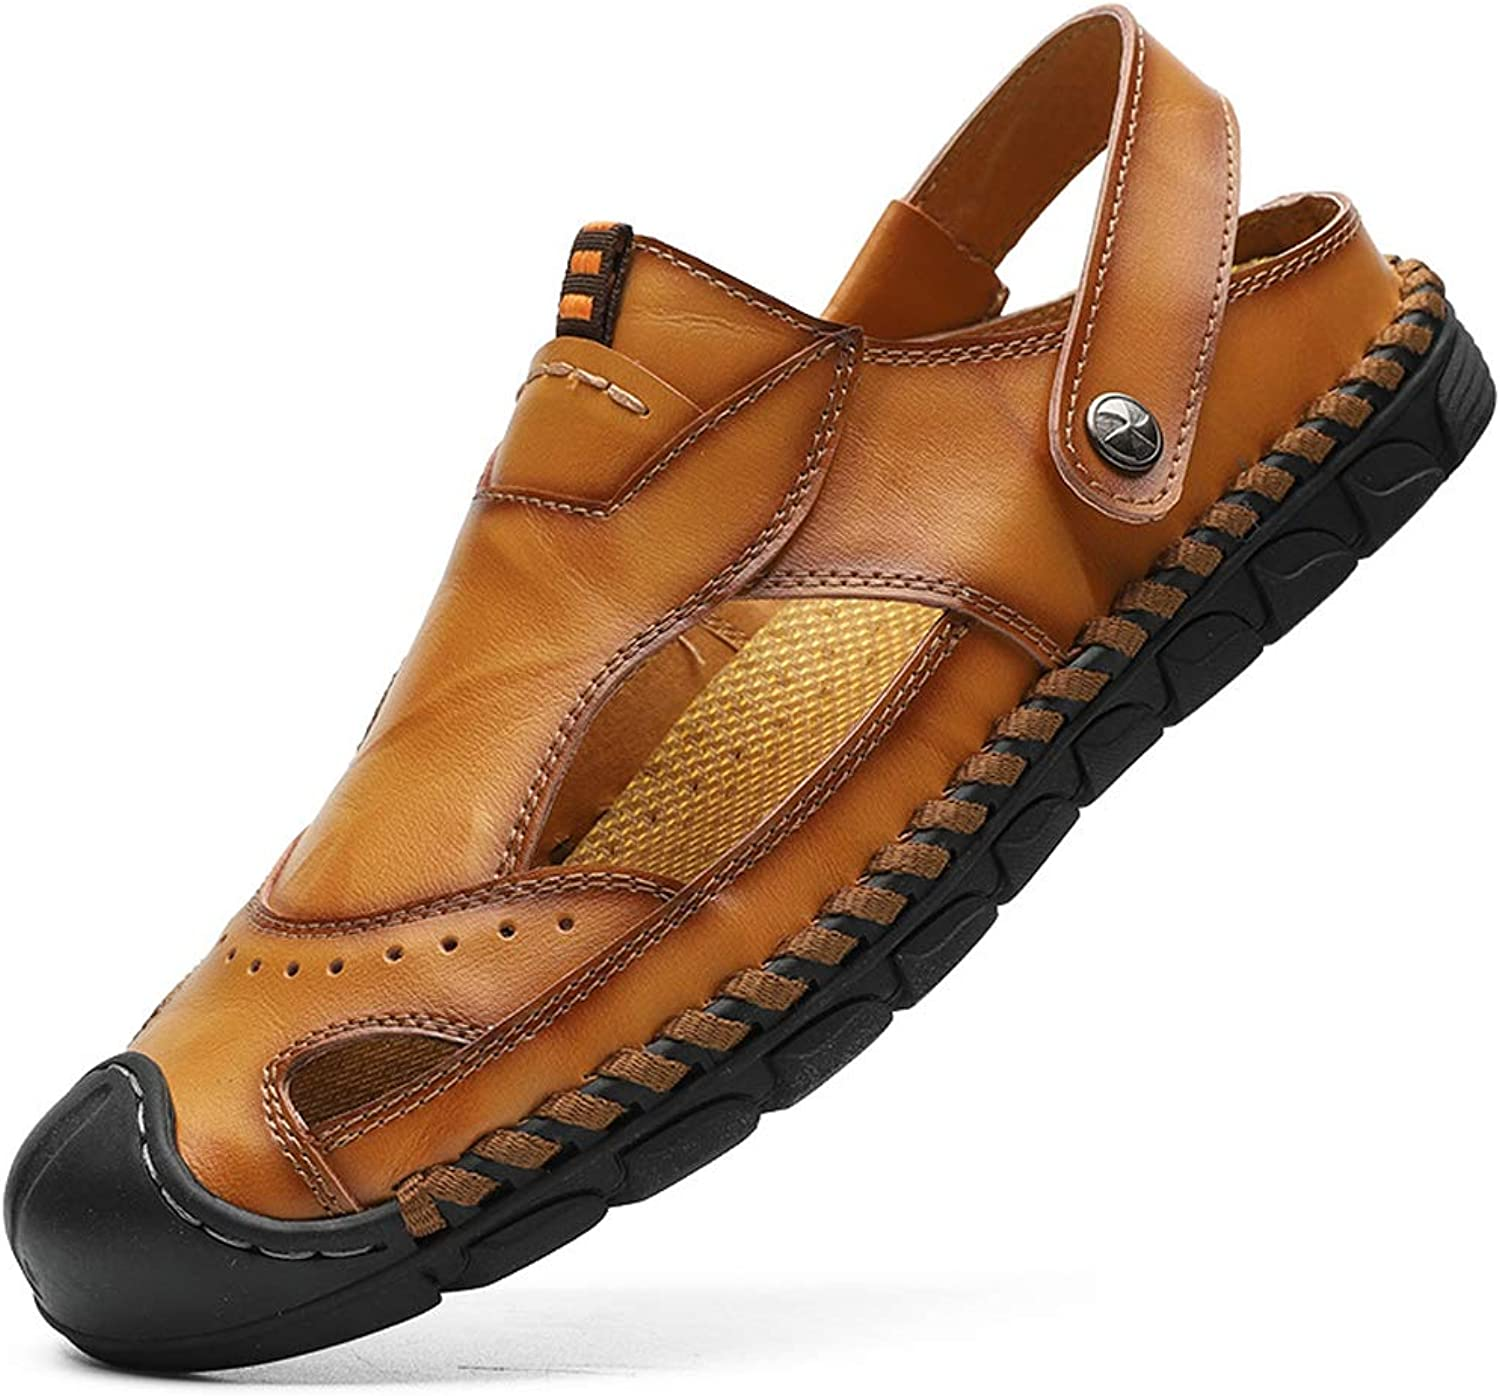 TYX-SS Summer Beach shoes Fashion Leather Men'S Casual Sandals Slippers